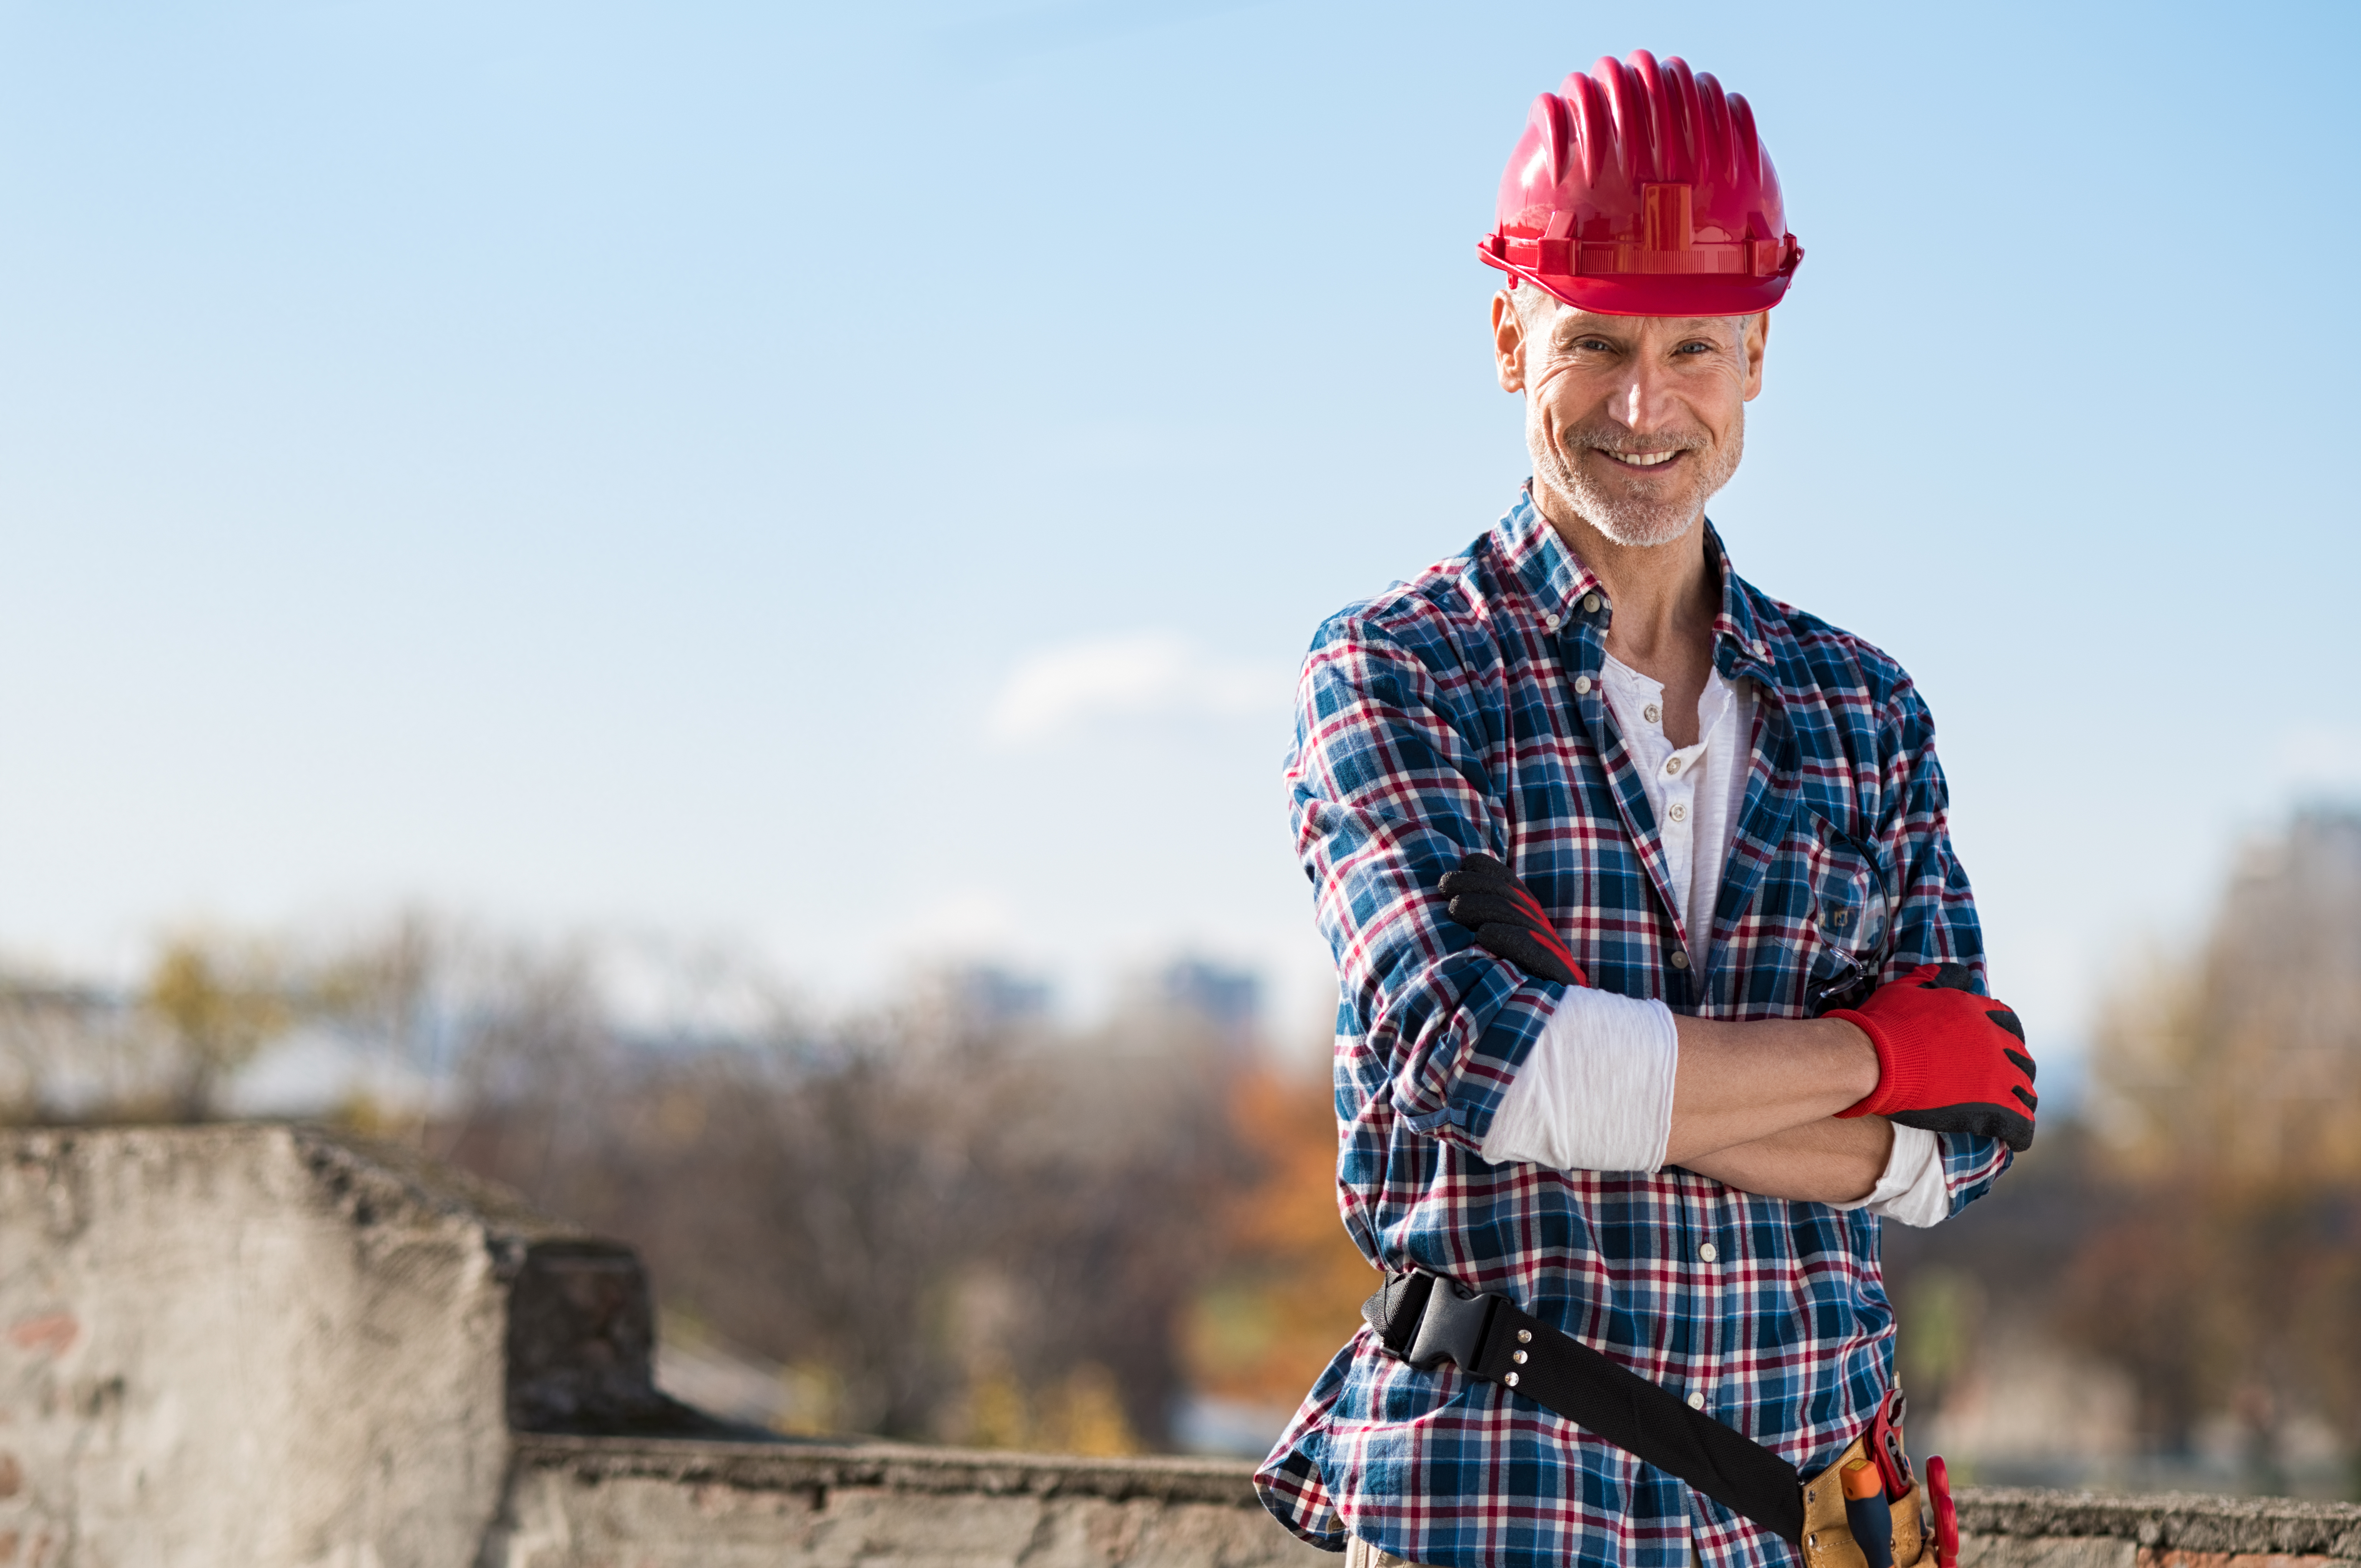 tradie with red helmet and blue shirt